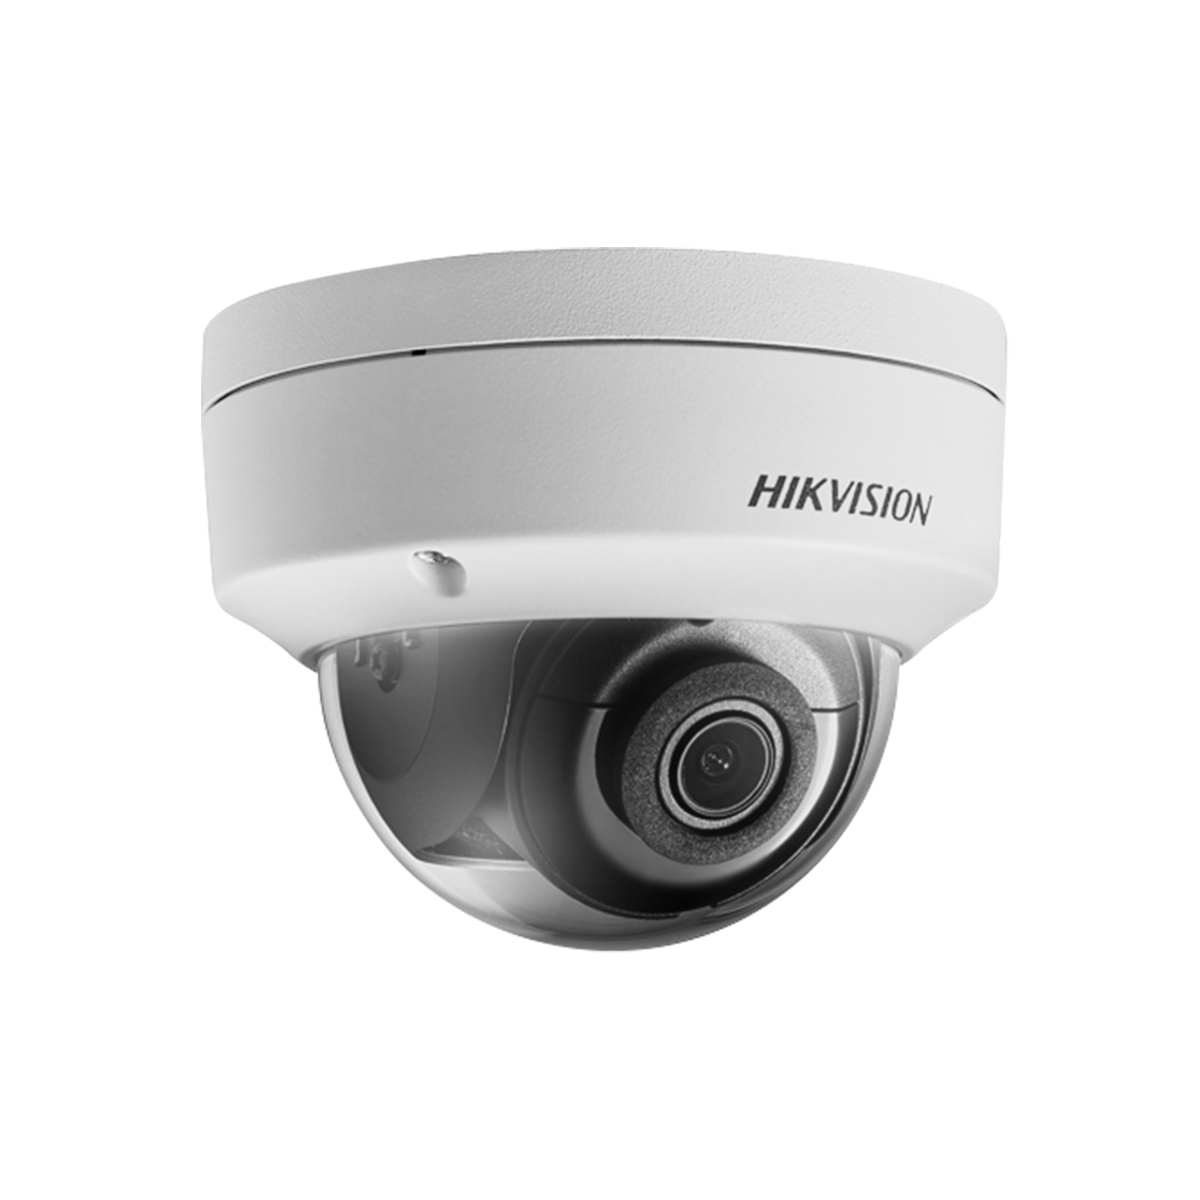 Hikvision 2 MP Ultra-Low Light Outdoor Network Dome Camera | DS-2CD2125FWD-I